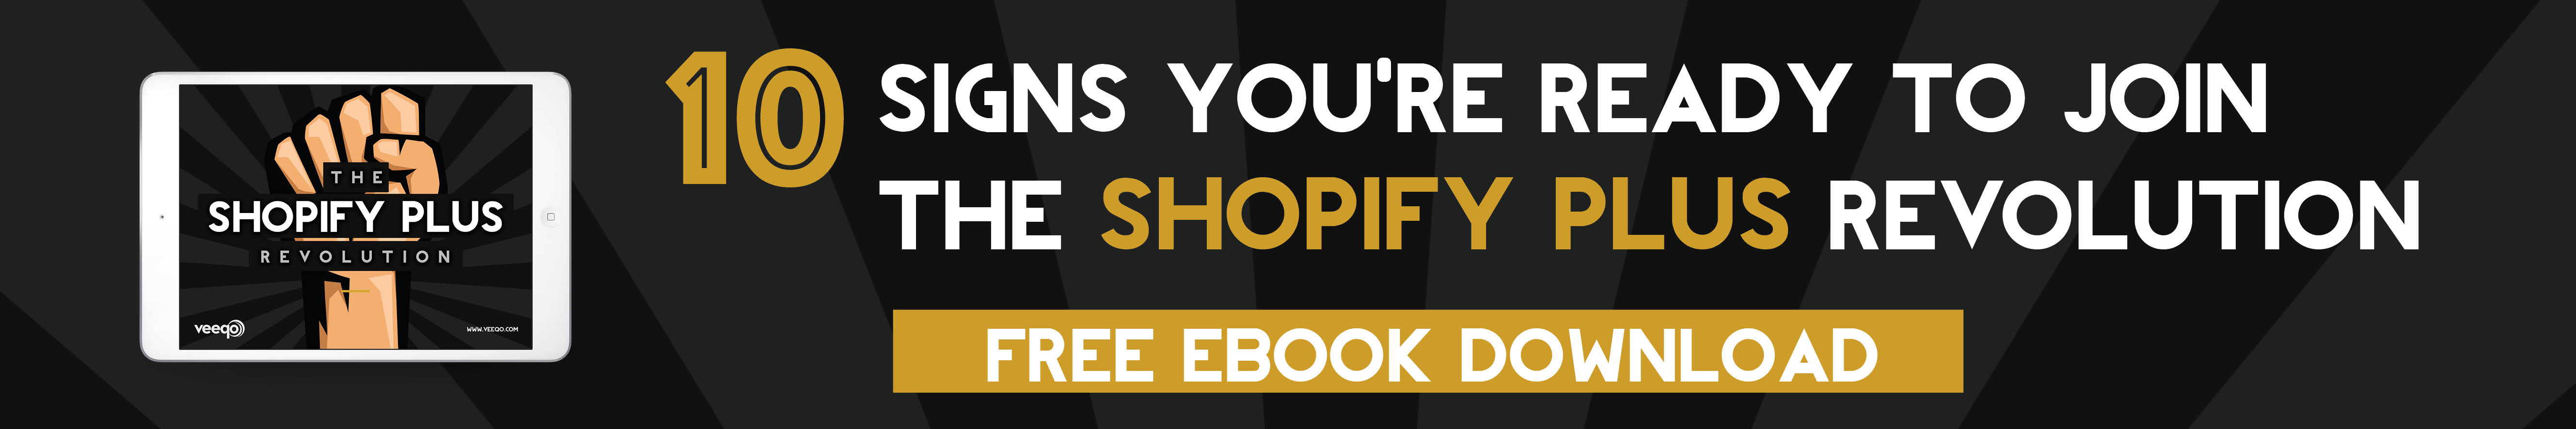 Shopify Plus features ebook